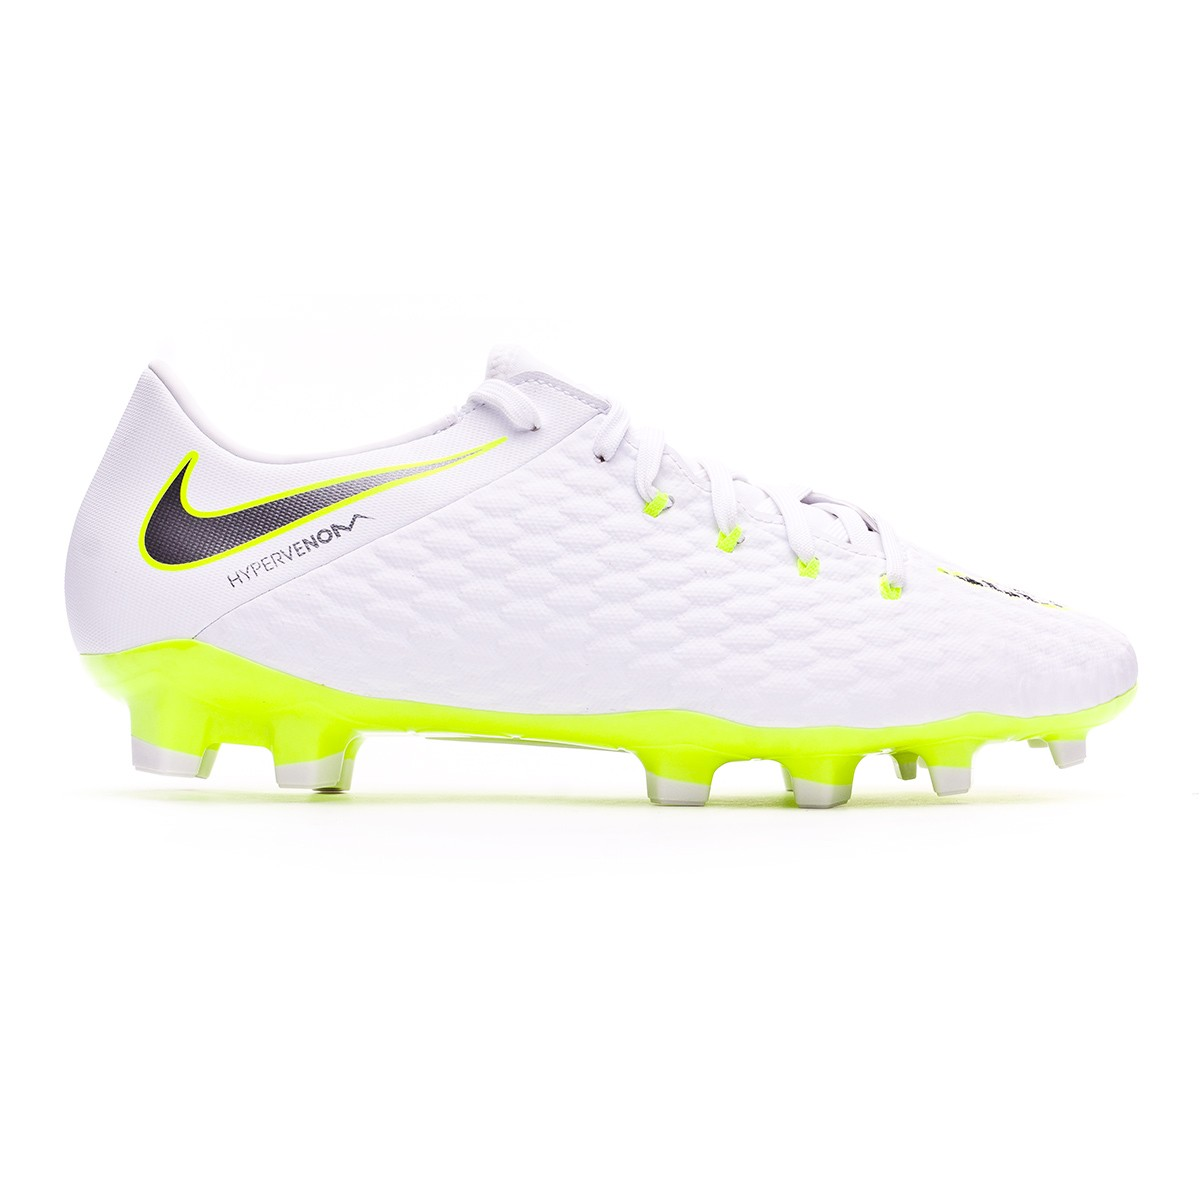 39d2cd137e3ae Chuteira Nike Hypervenom Phantom III Academy FG White-Metallic cool  grey-Volt-Metallic cool g - Loja de futebol Fútbol Emotion